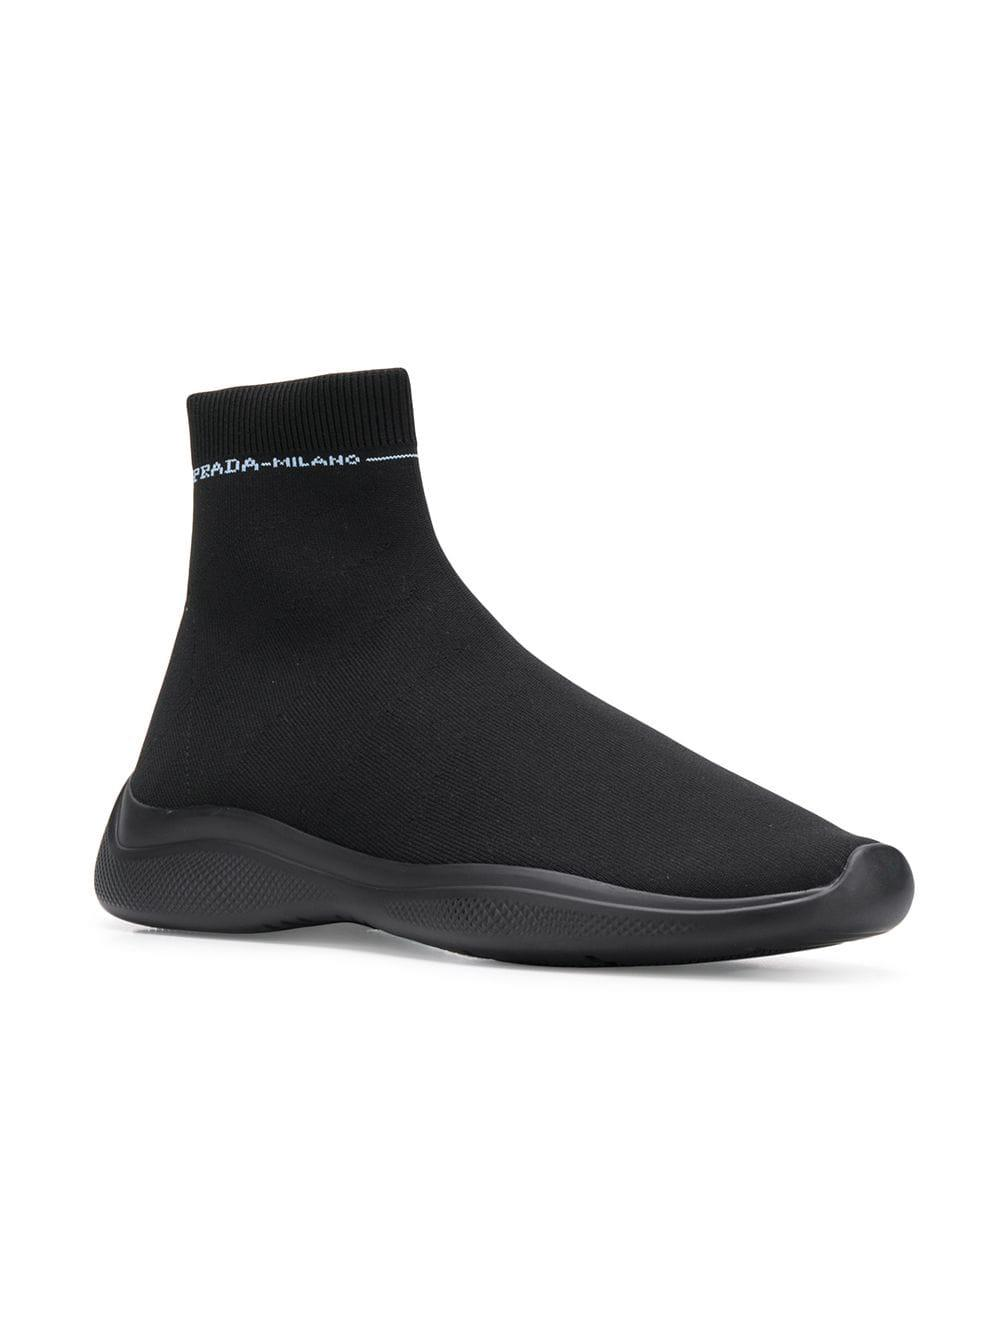 c1e83a7d2a1e Prada Sock Shaped Sneakers in Black for Men - Lyst